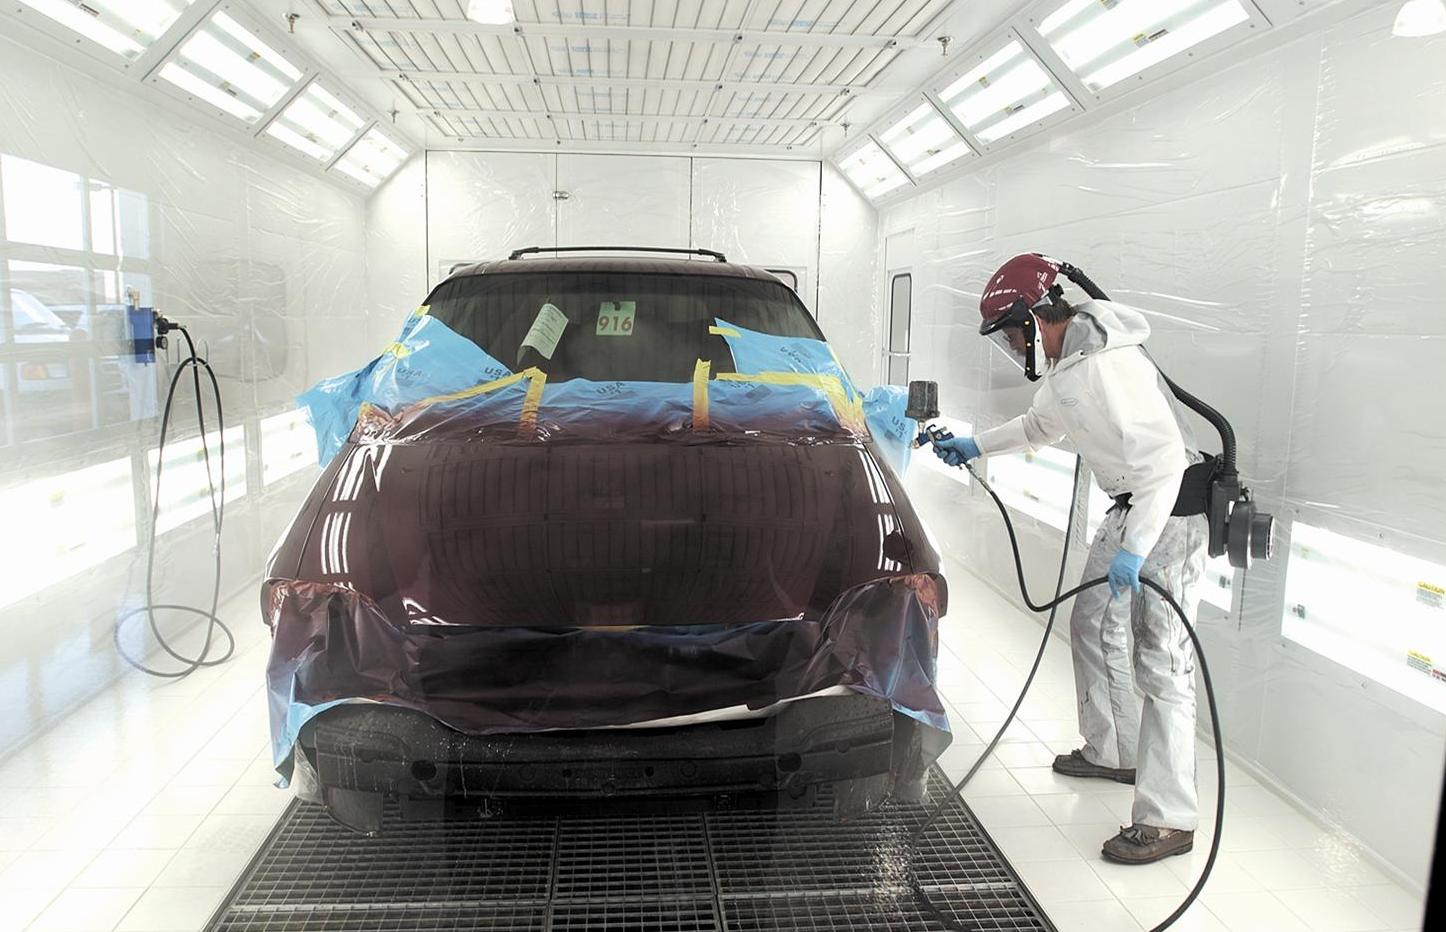 Experience a Vehicle Refresh at the Don Hinds Ford Inc Auto Body Shop Serving Carmel Noblesville Indianapolis and Anderson IN & Don Hinds Ford Inc | Fishers Ford Auto Body markmcfarlin.com